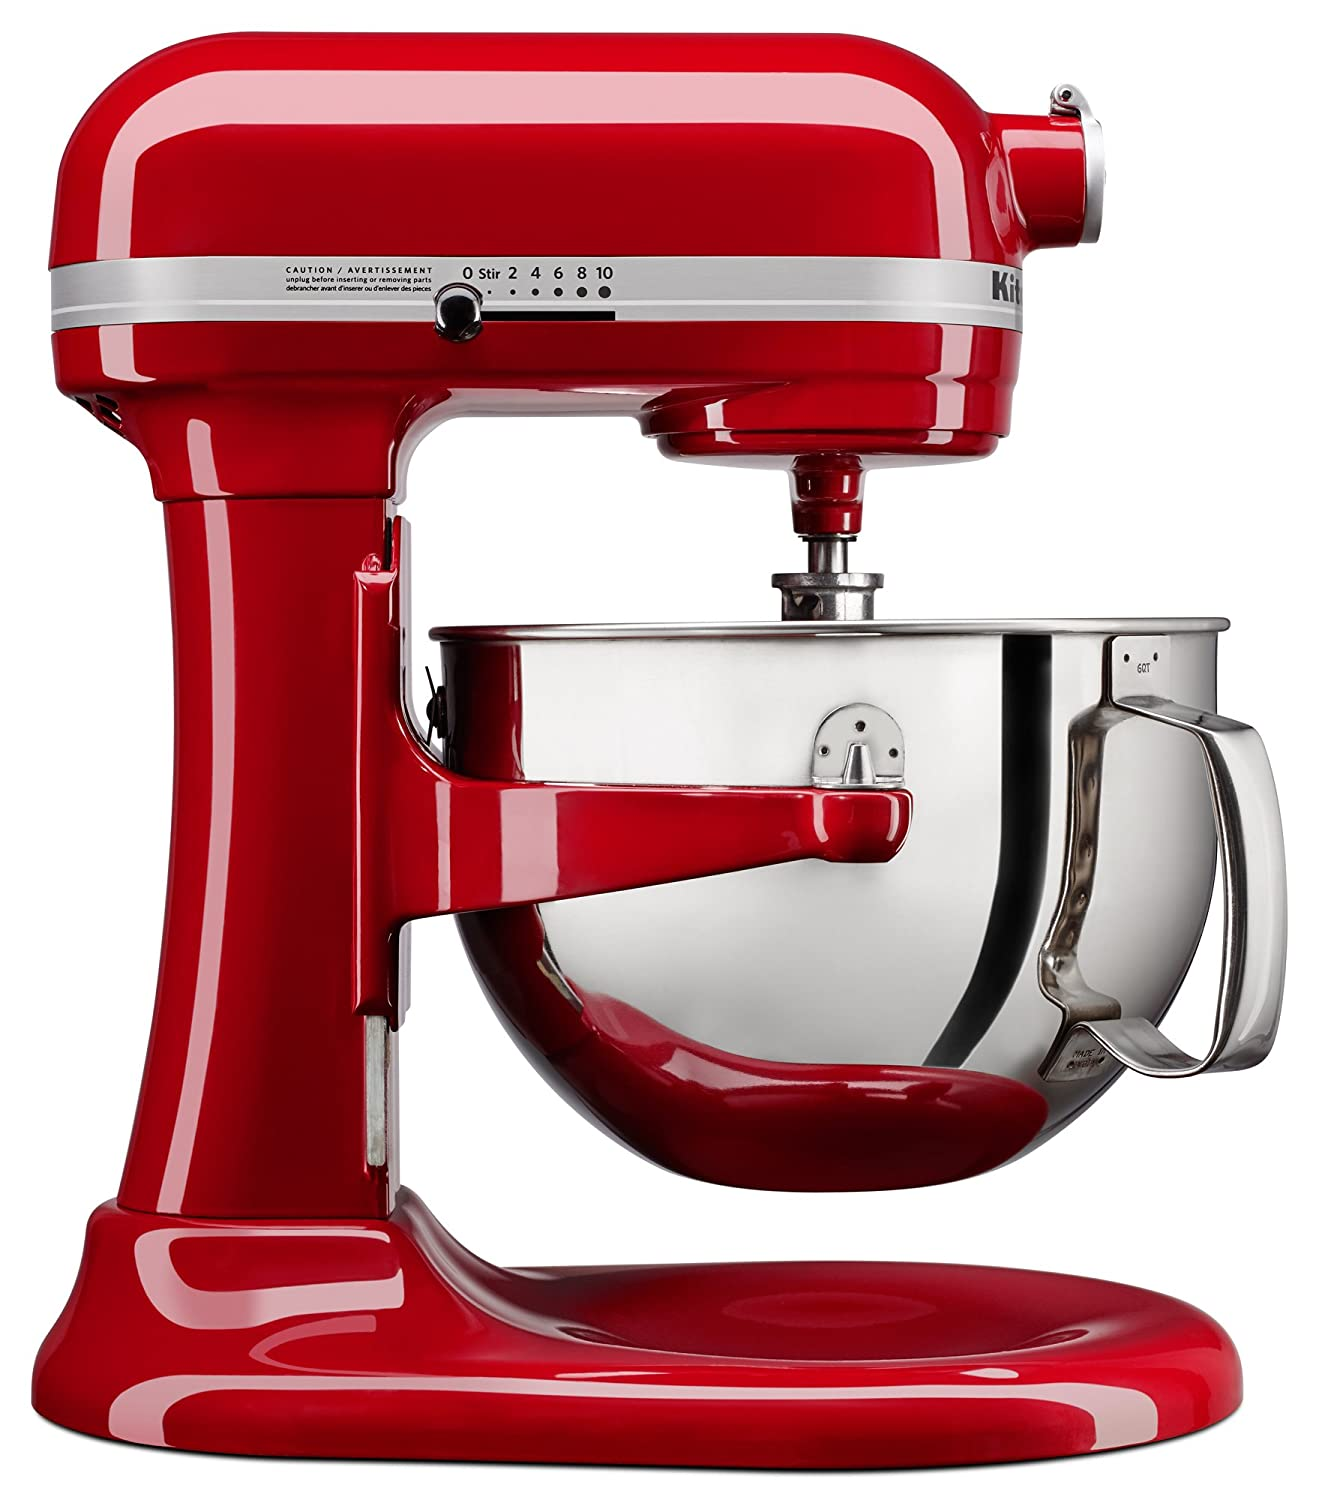 $299.99 (was $379.99) KitchenAid KL26M1XER Professional 6 quart Bowl-Lift Stand Mixer, Empire Red